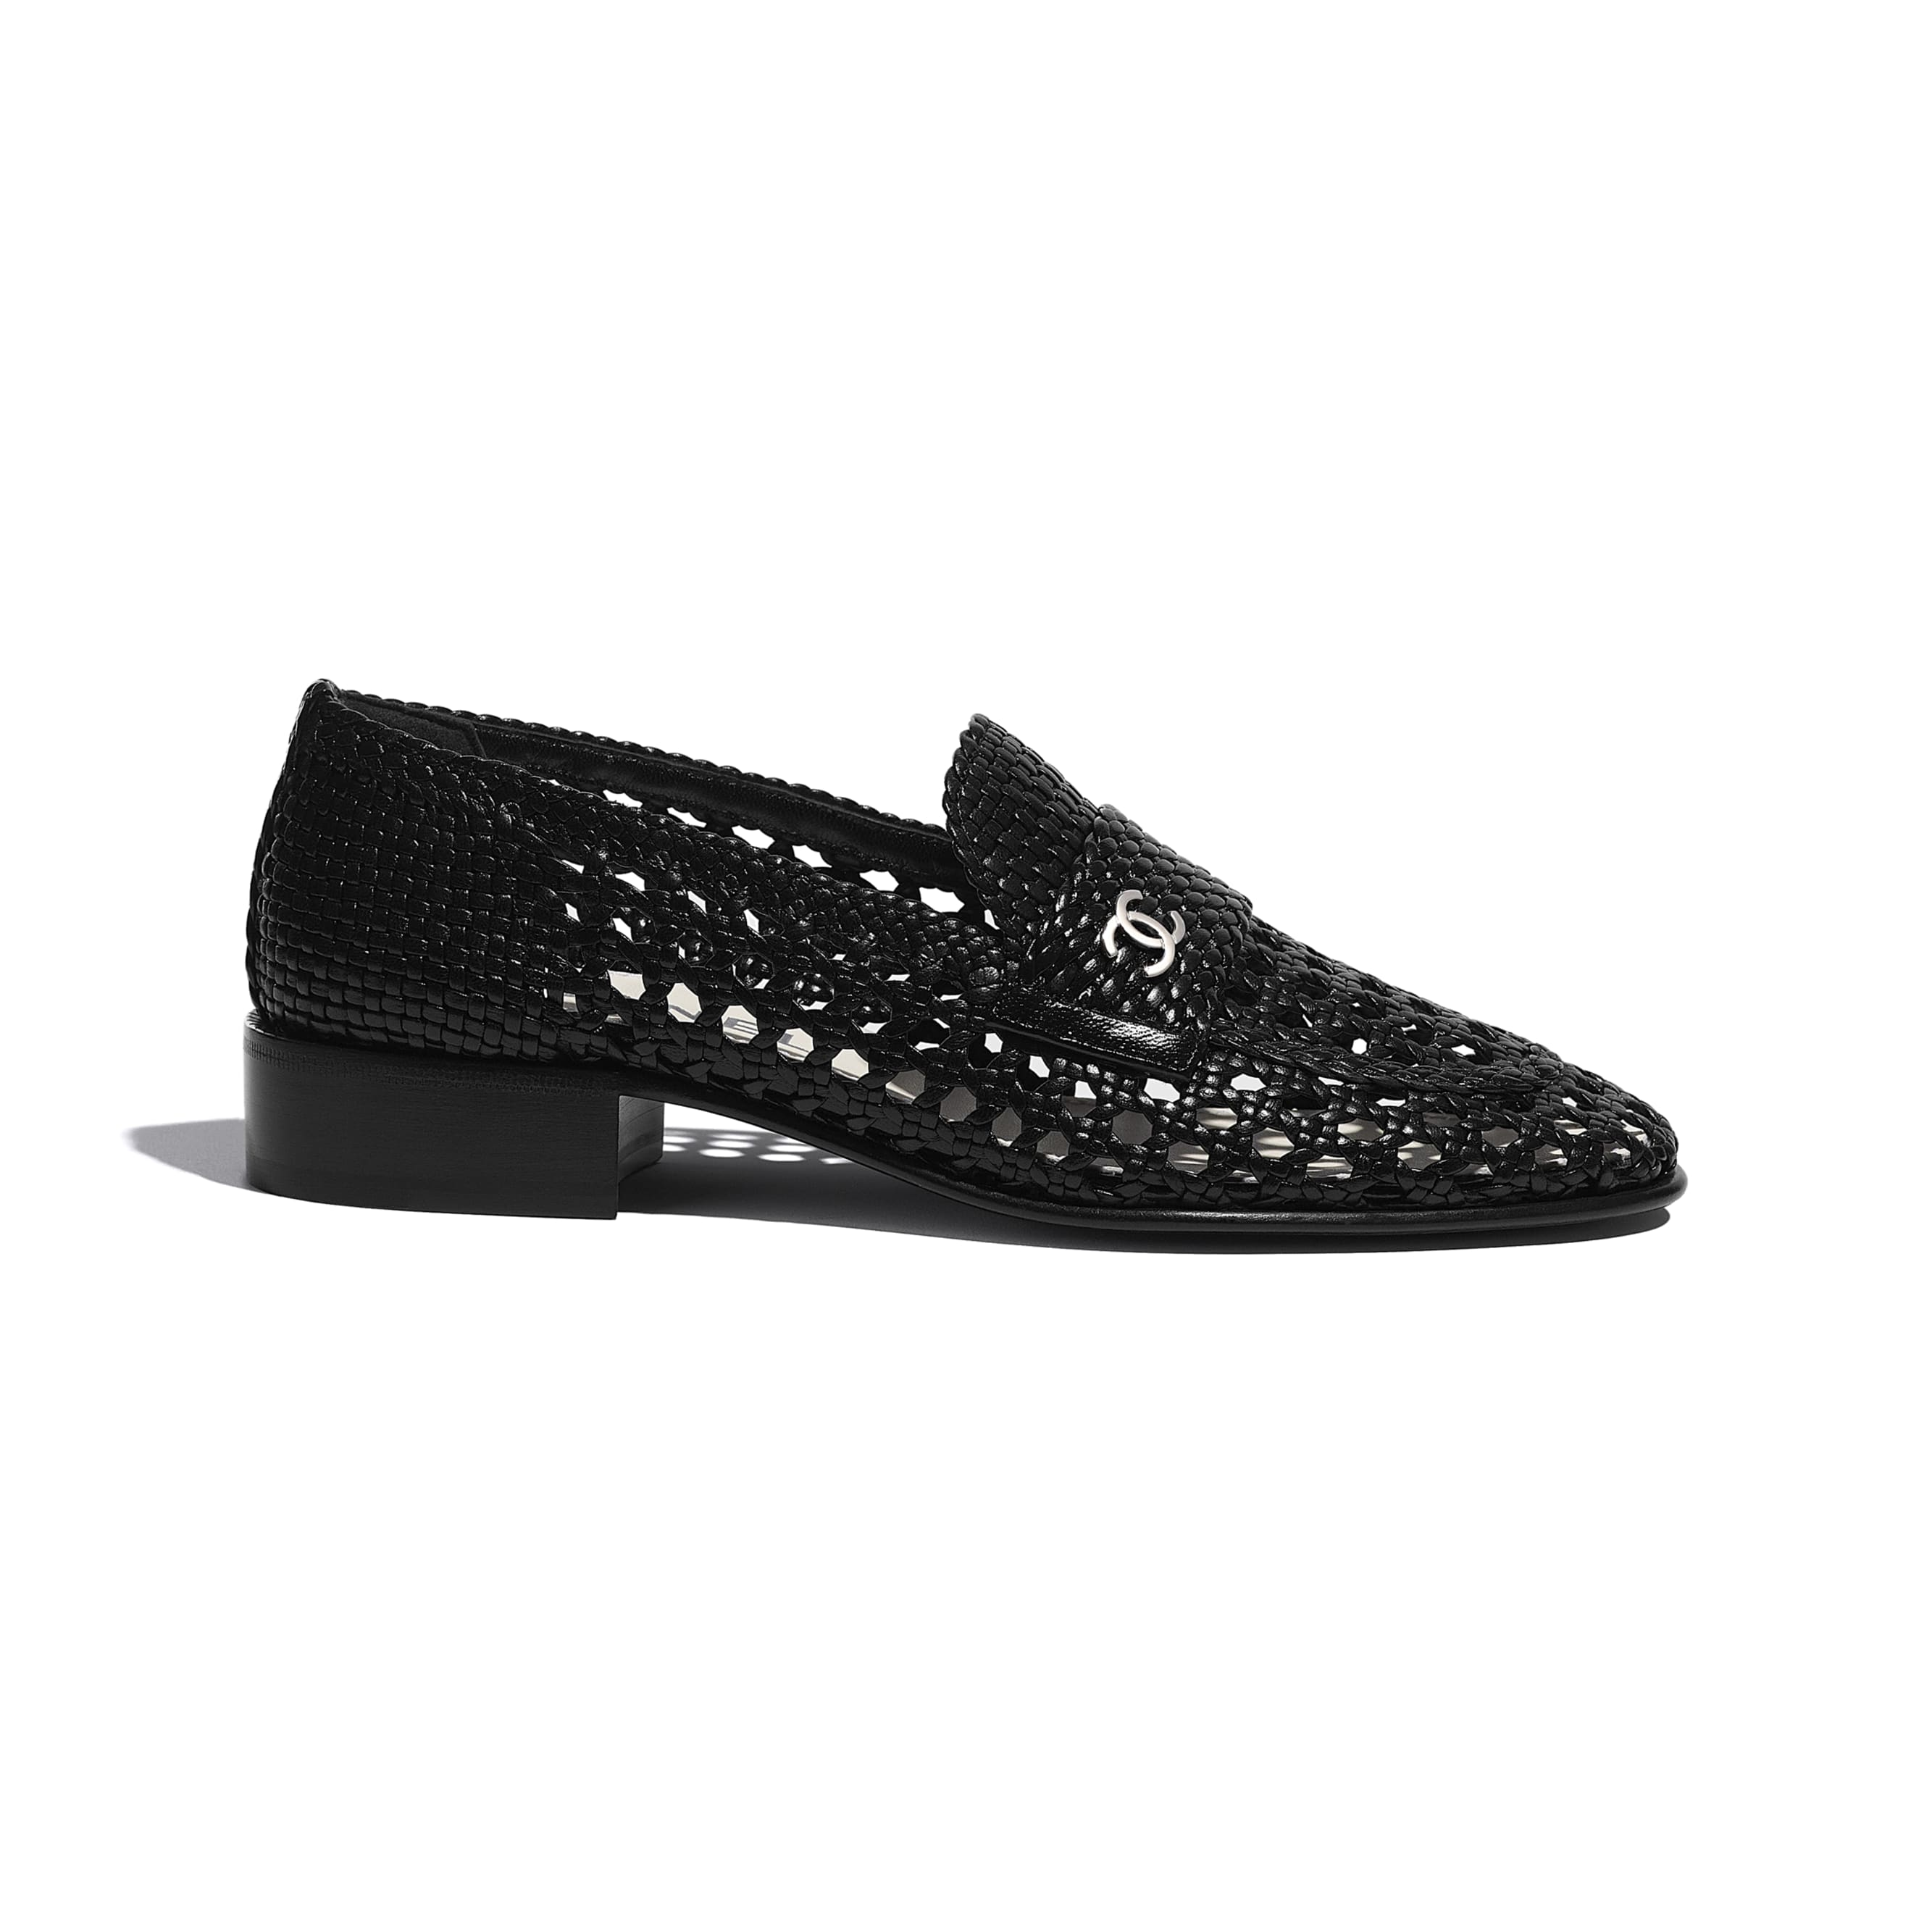 Loafers - Black - Shiny Braided Goatskin - CHANEL - Default view - see standard sized version